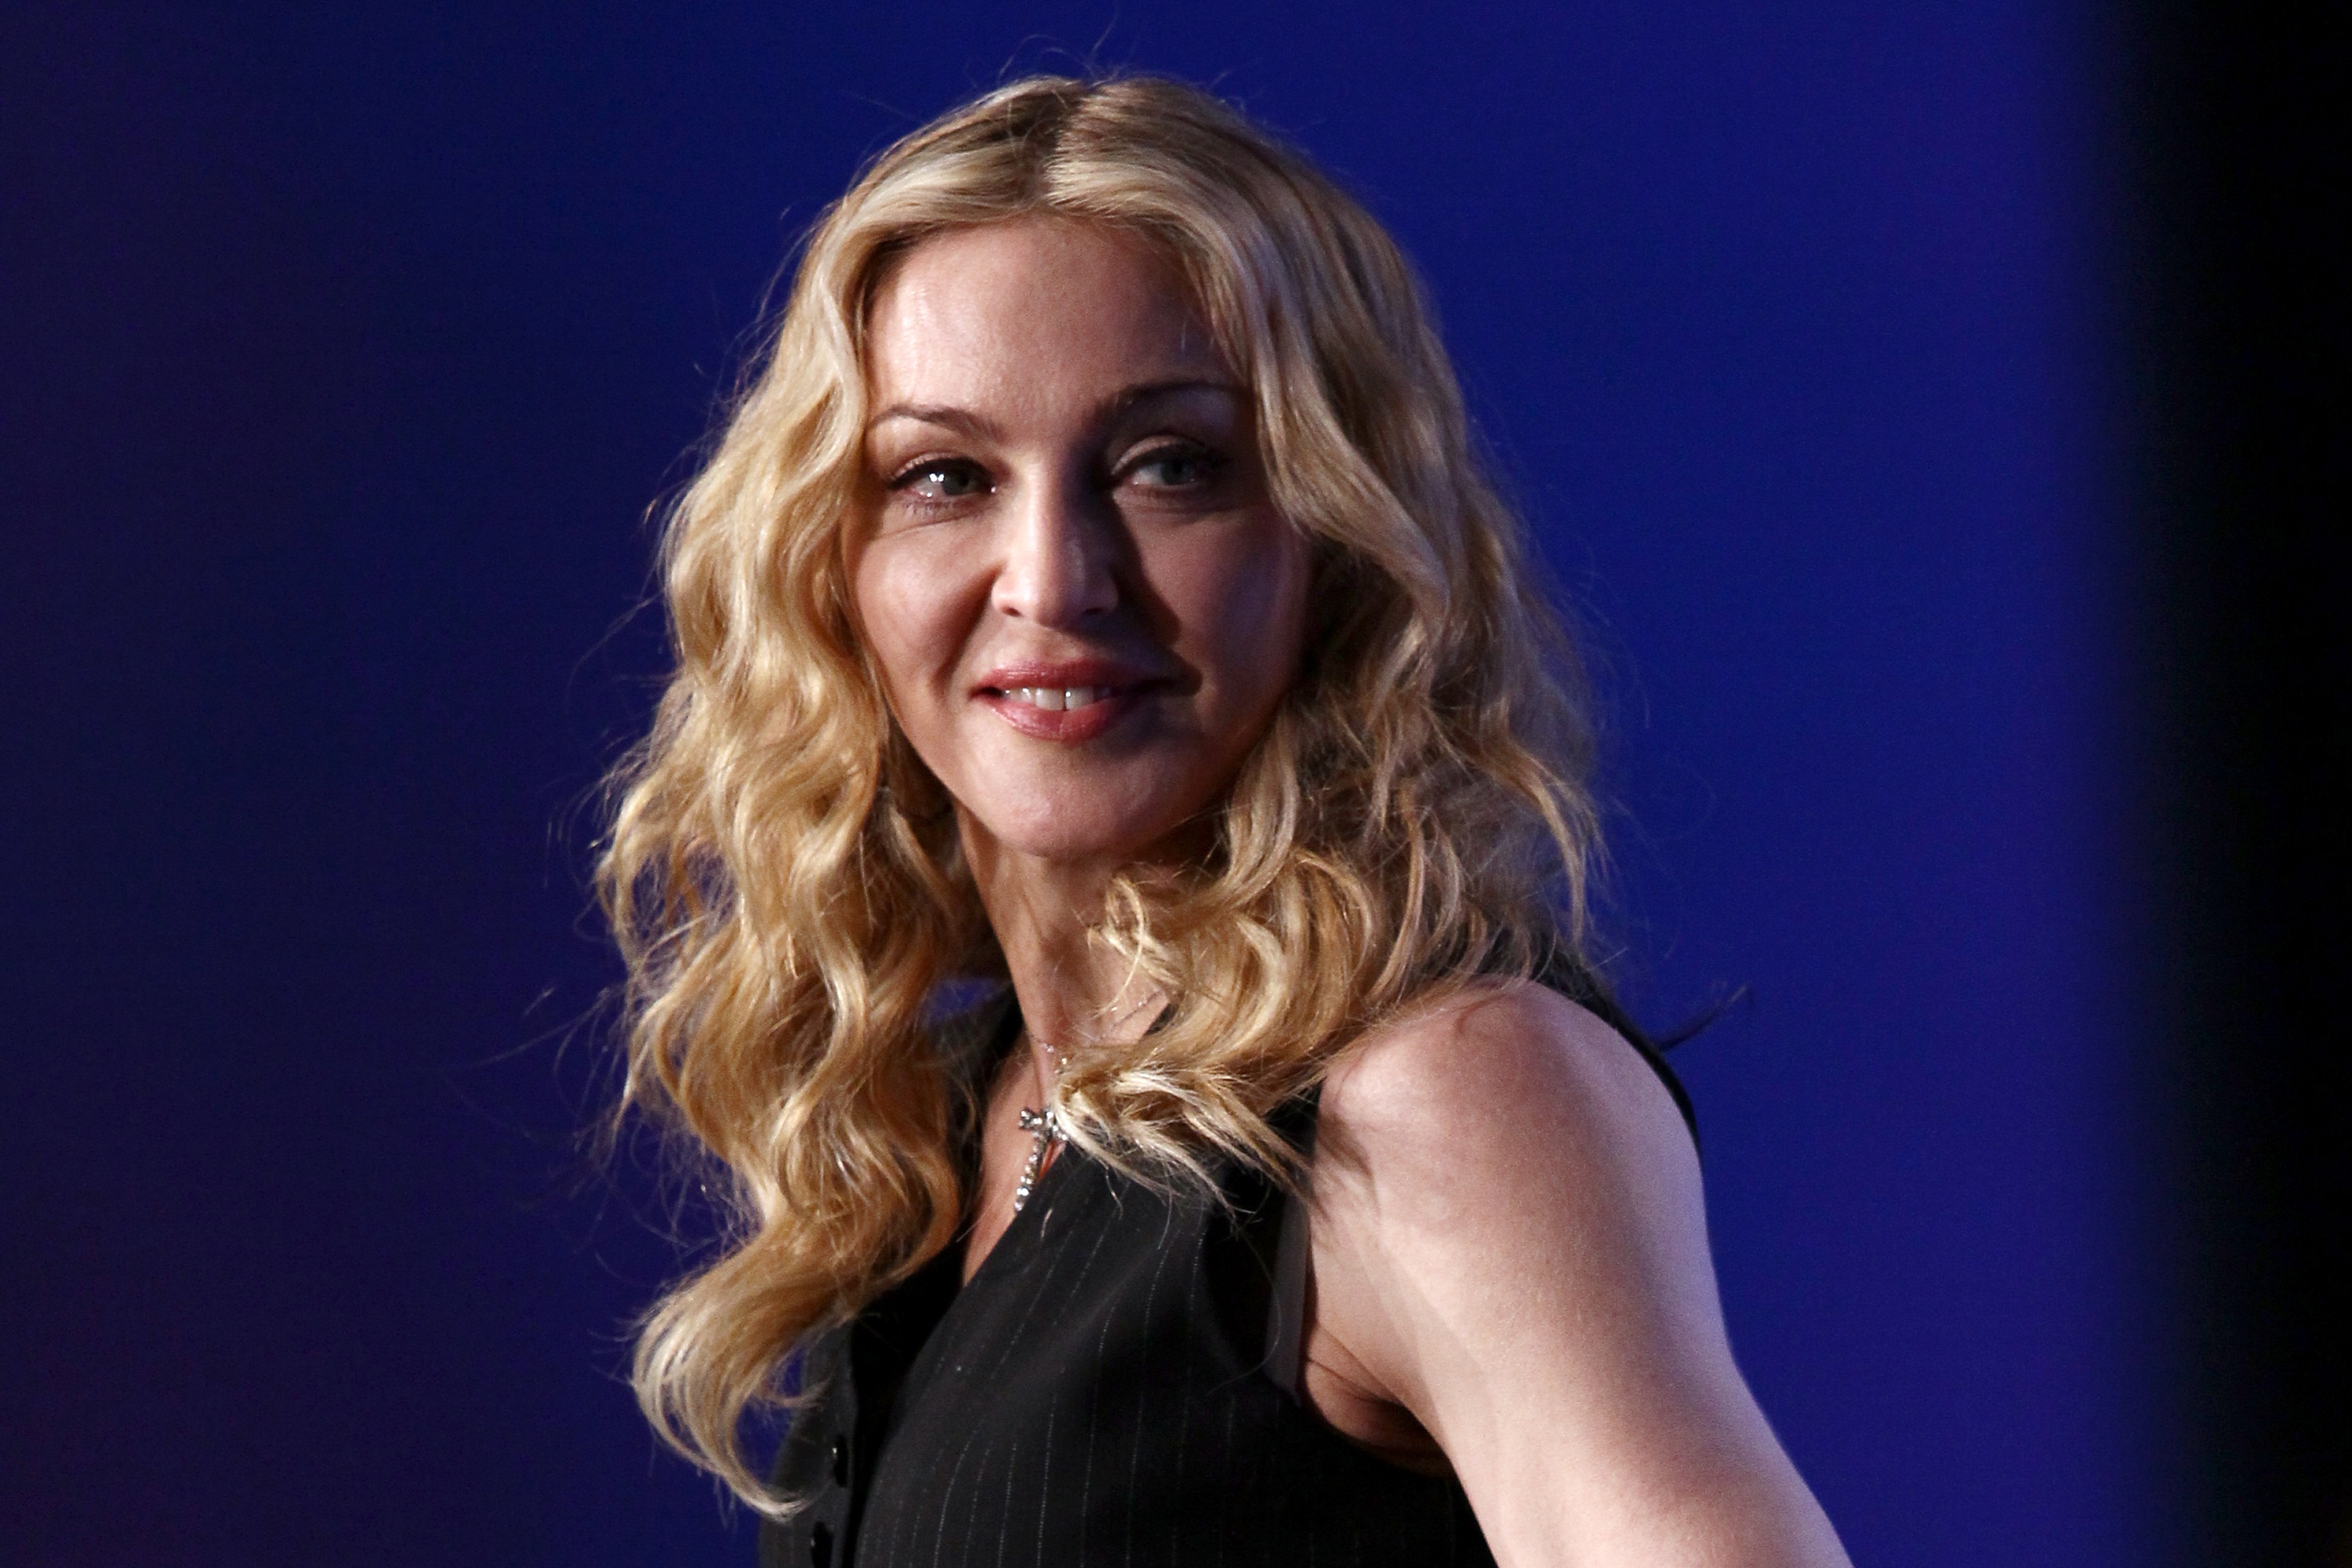 Madonna urged to boycott Eurovision Song Contest by Palestinian campaigners